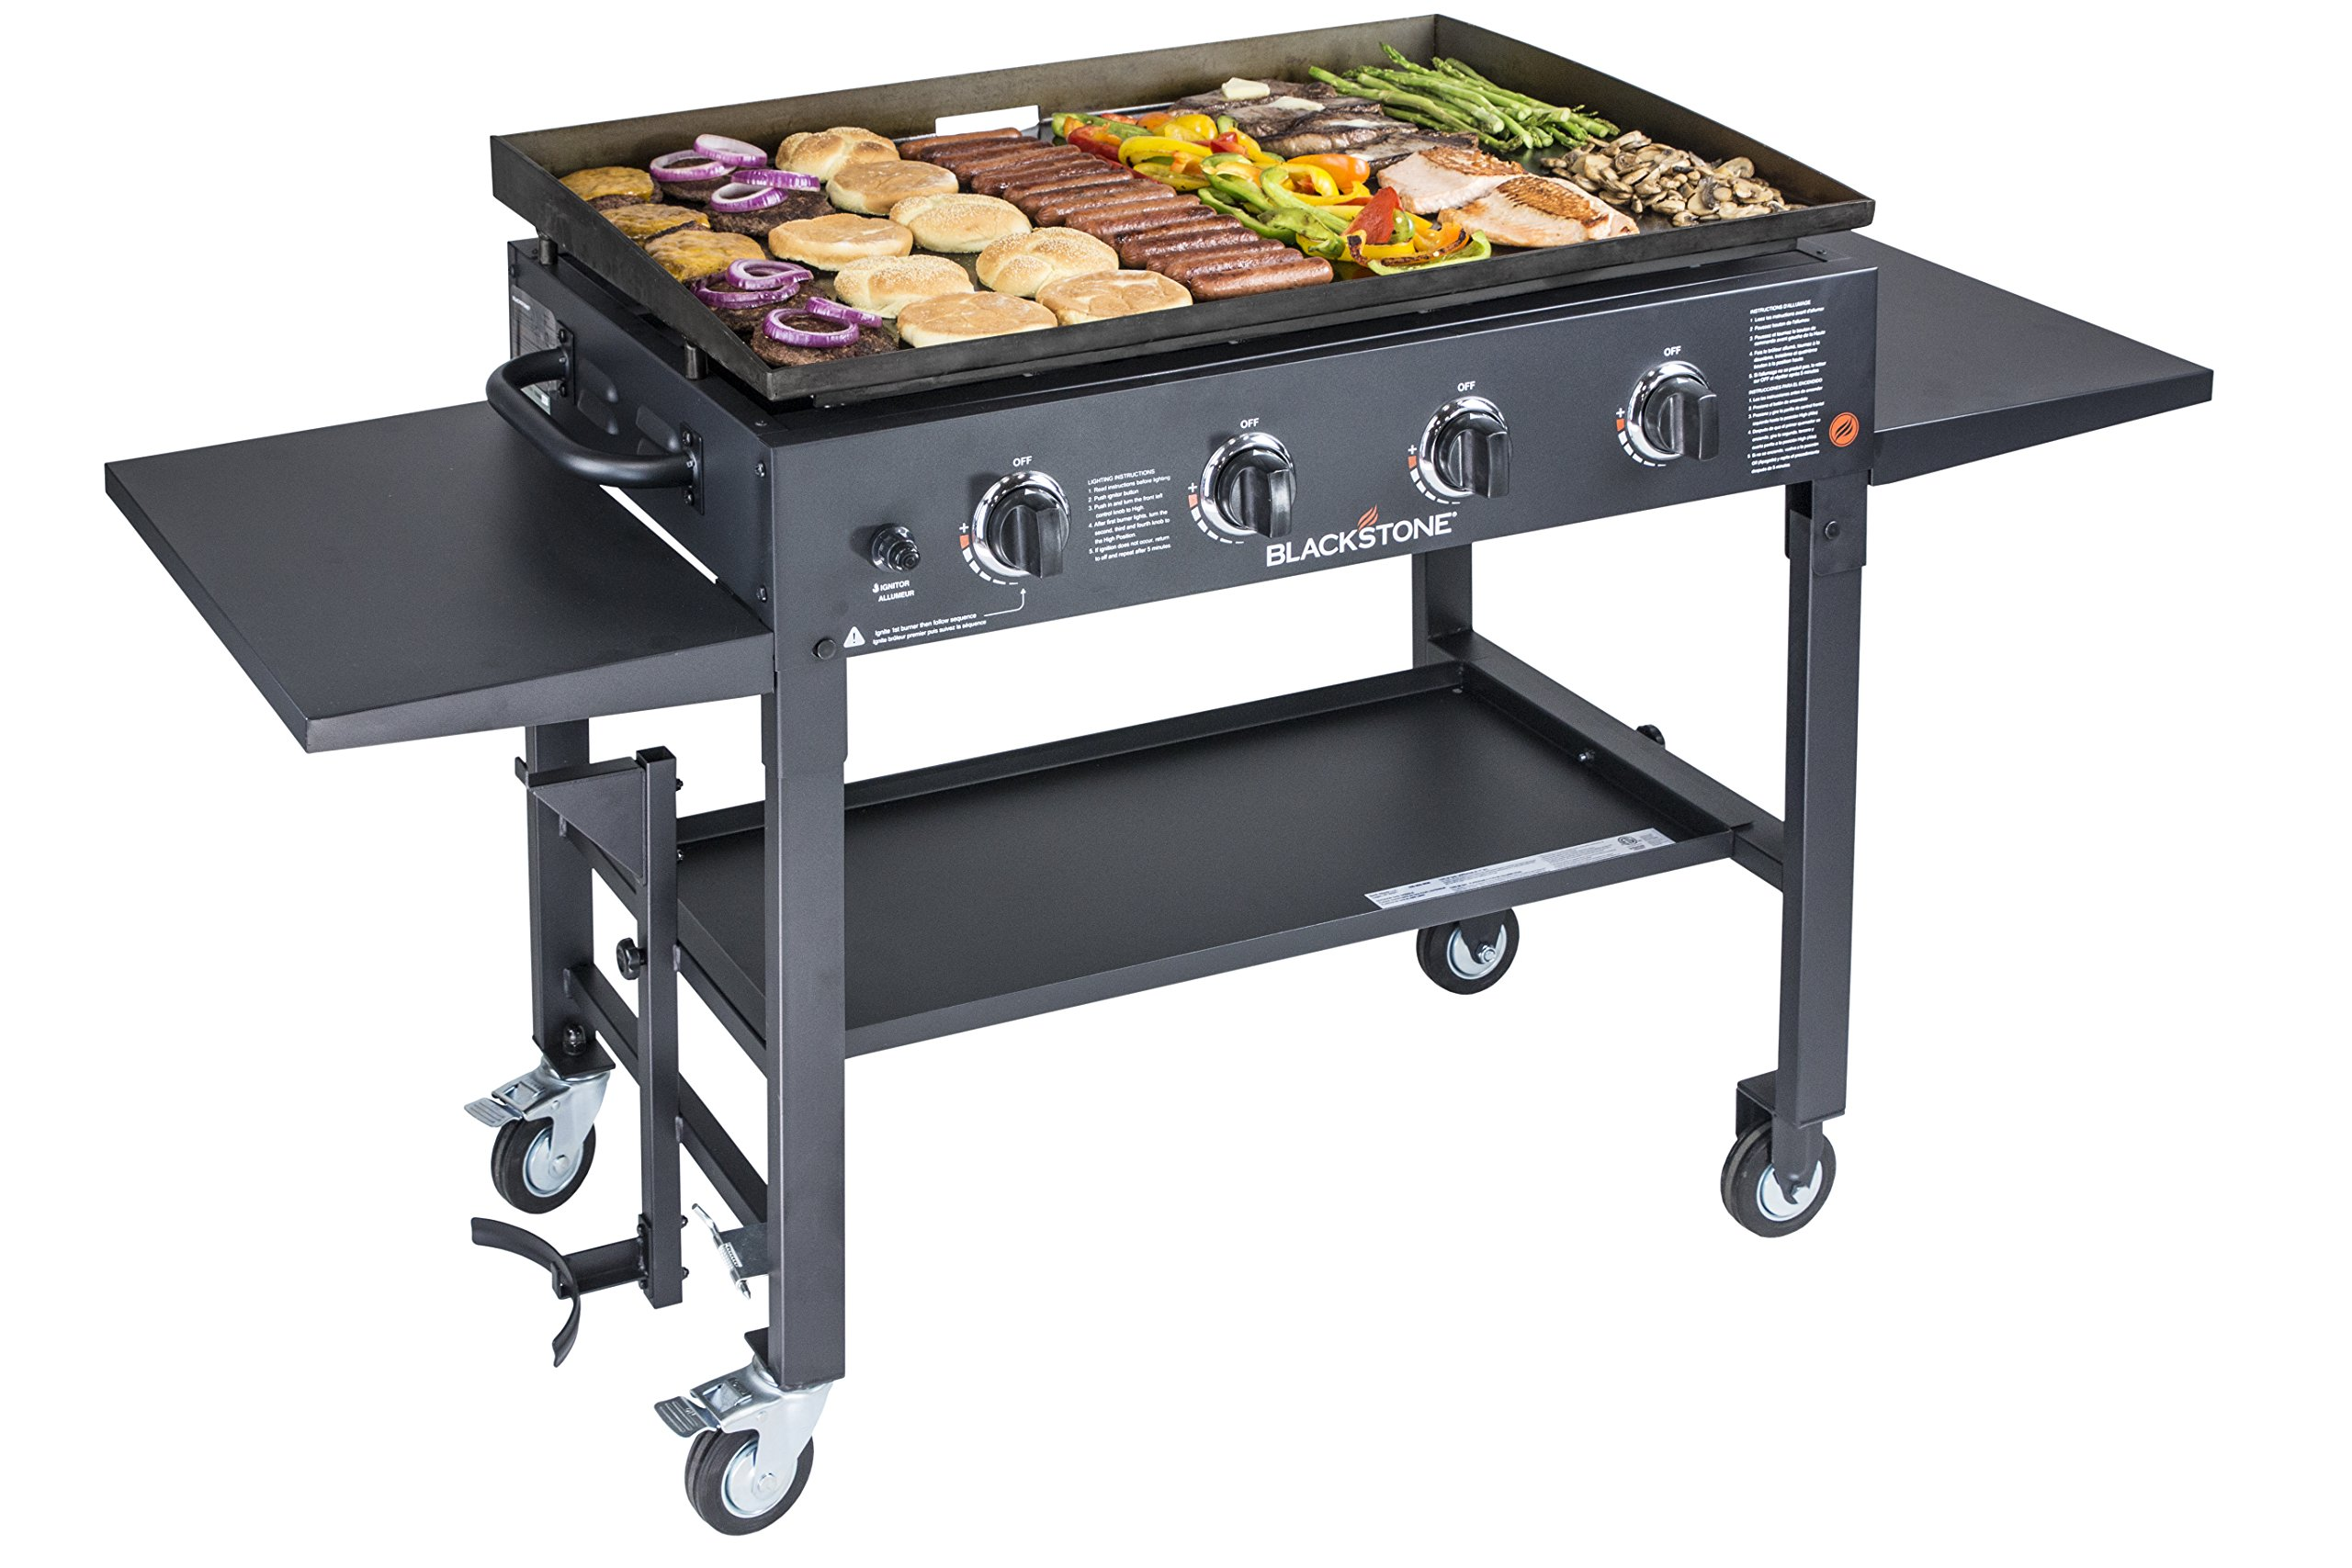 Blackstone 36 inch Outdoor Flat Top Gas Grill Griddle Station - 4-burner - Propane Fueled - Restaurant Grade - Professional Quality